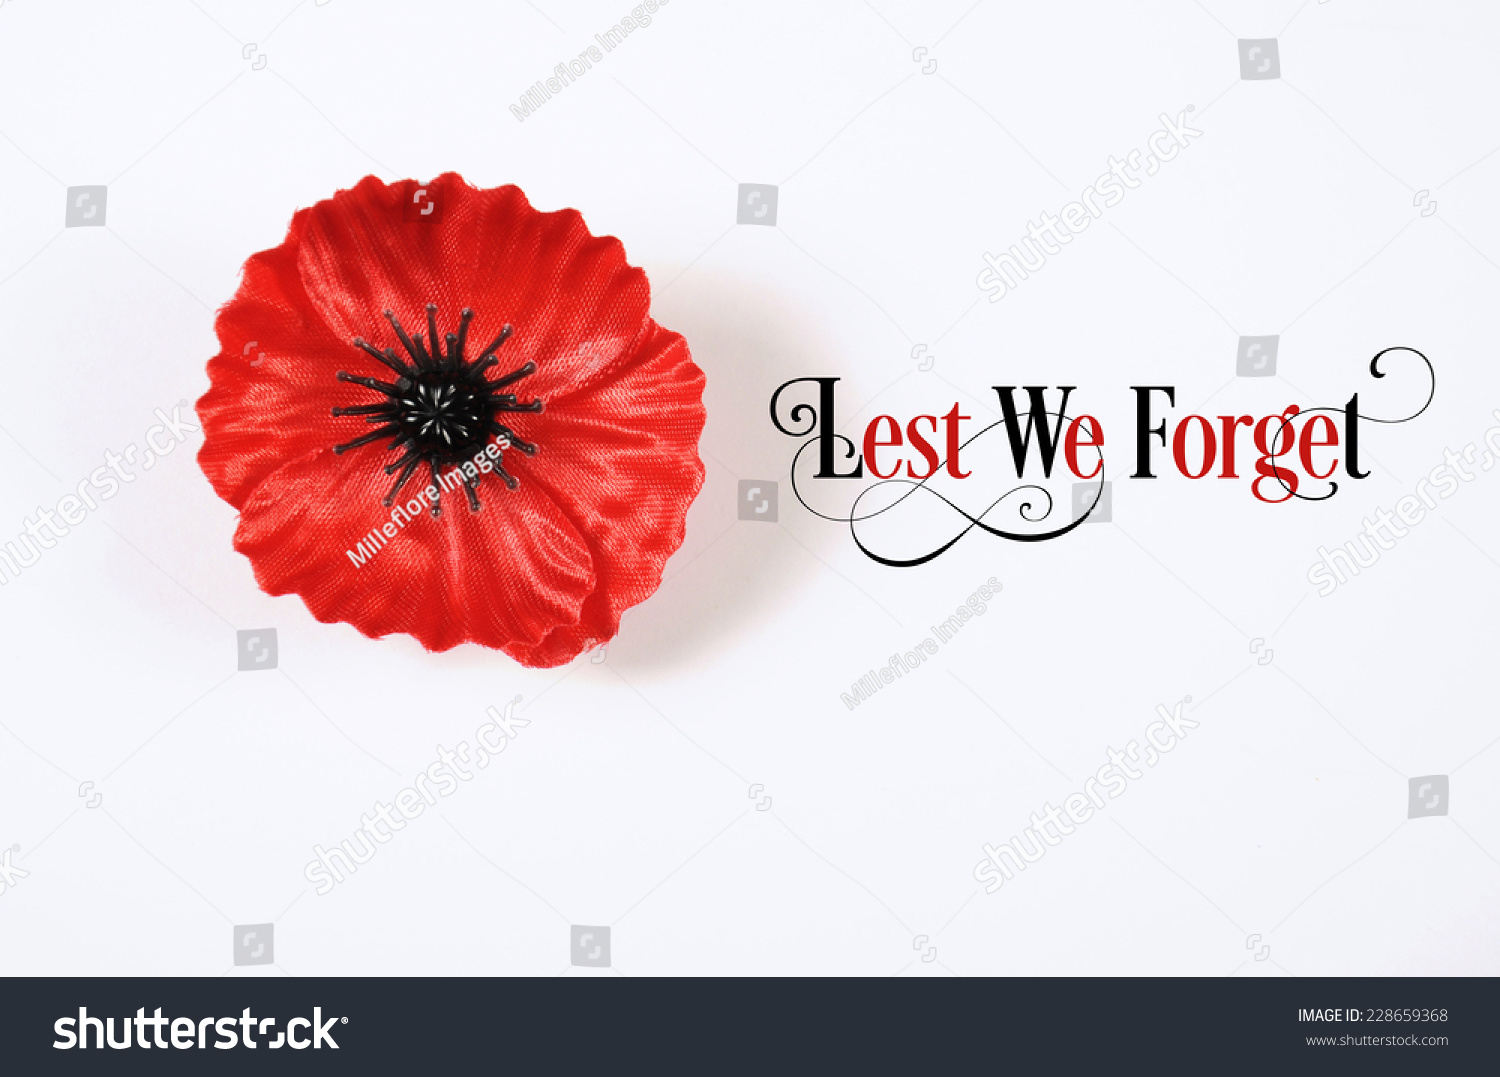 Lest We Forget Red Flanders Poppy Stock Photo Edit Now 228659368